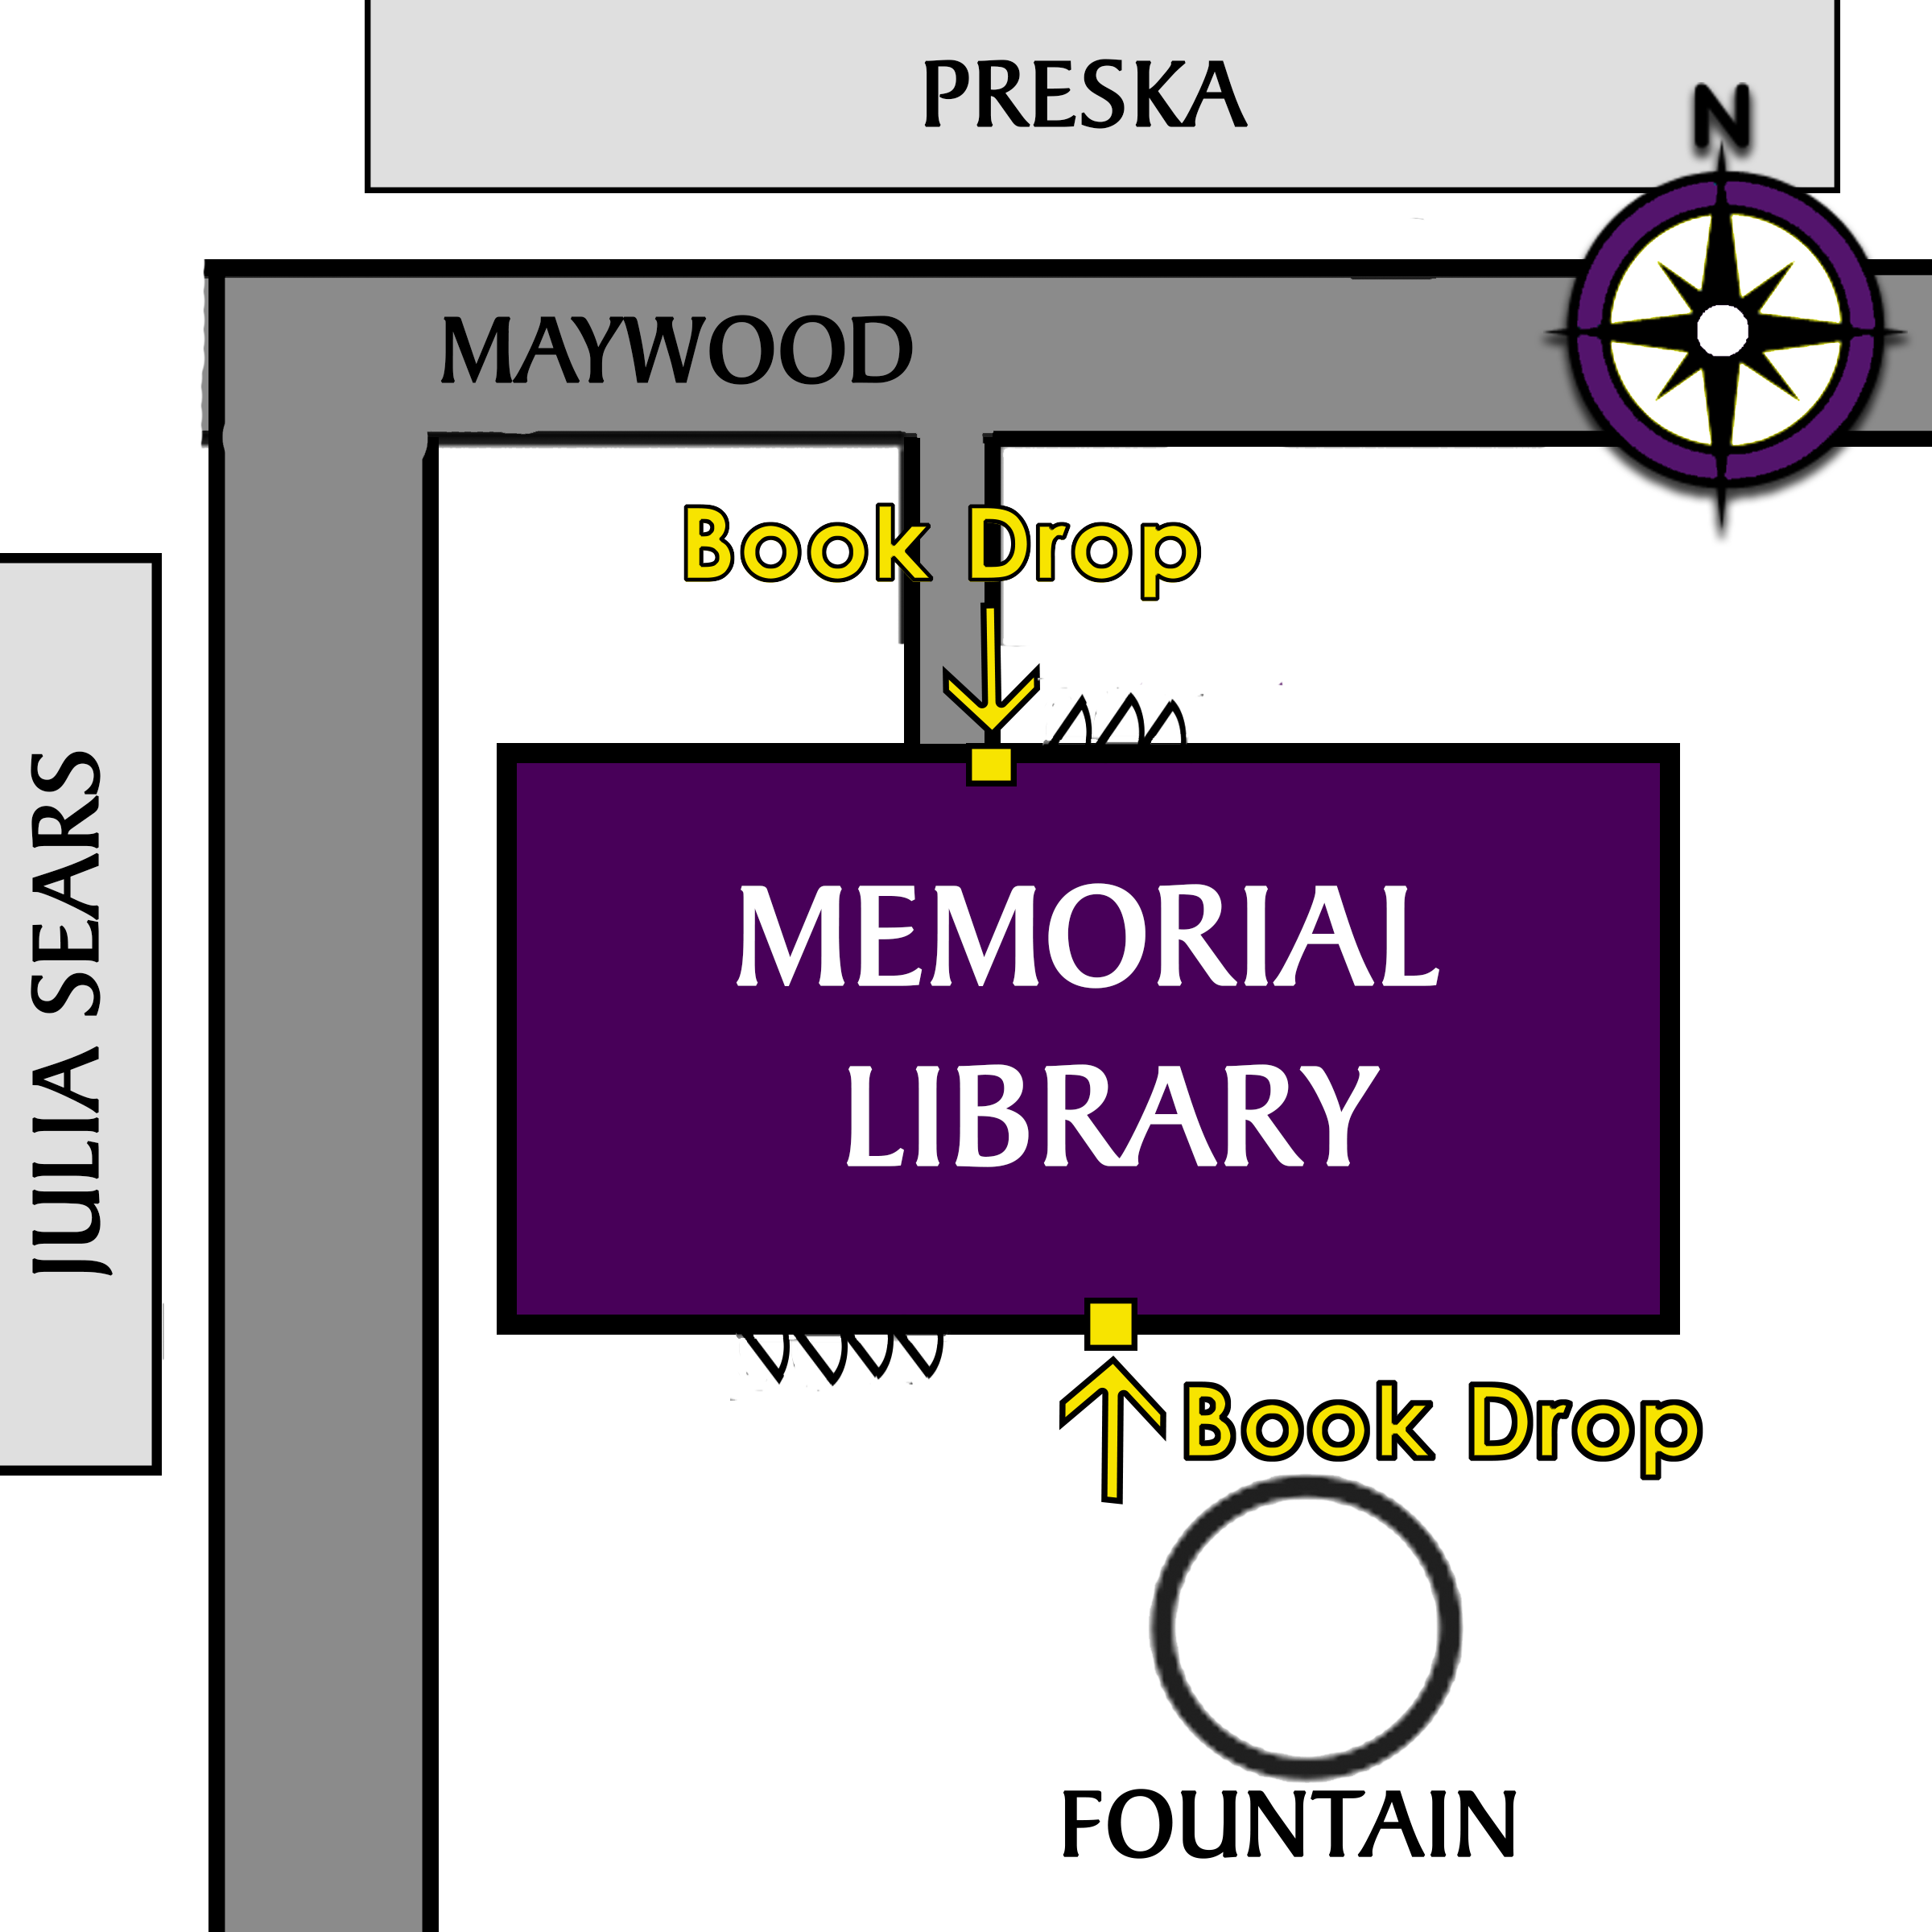 Book drop locations